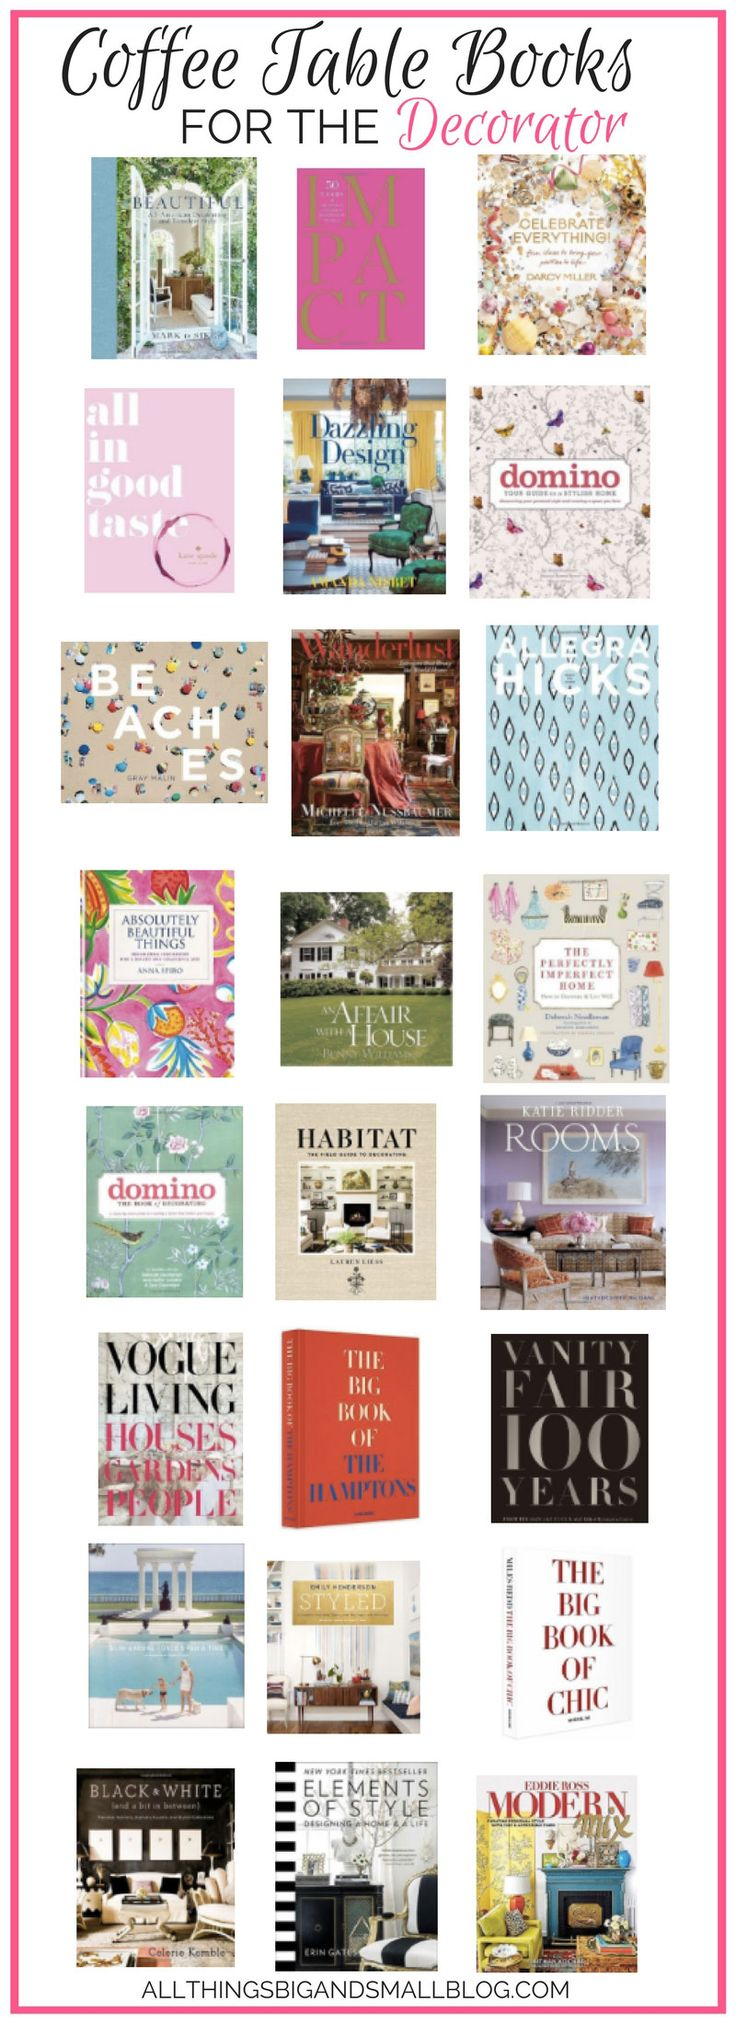 Best Coffee Table Books | Best coffee table books for decor lovers | best interior design books | best decorating books | All Things Big and Small